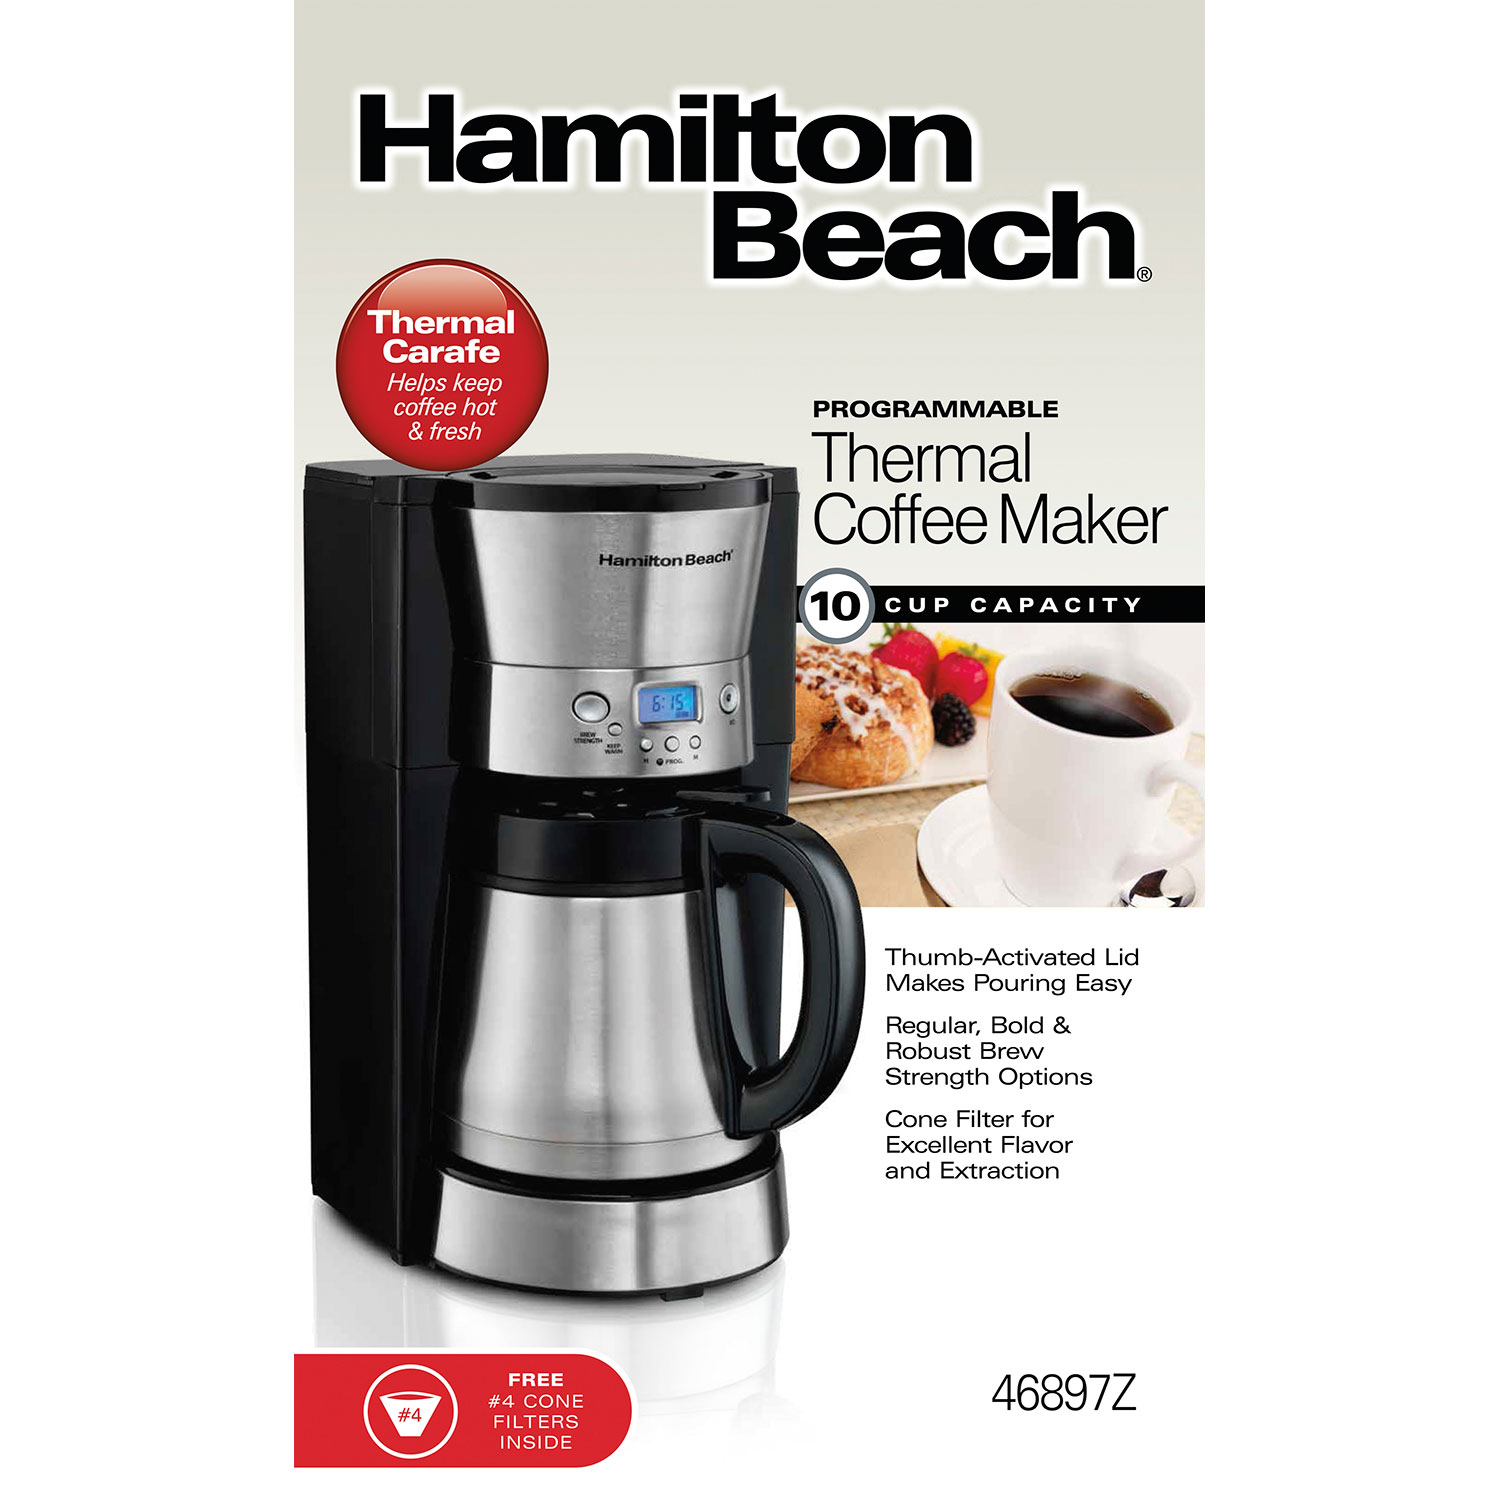 Programmable Thermal Coffee Maker (46897Z)